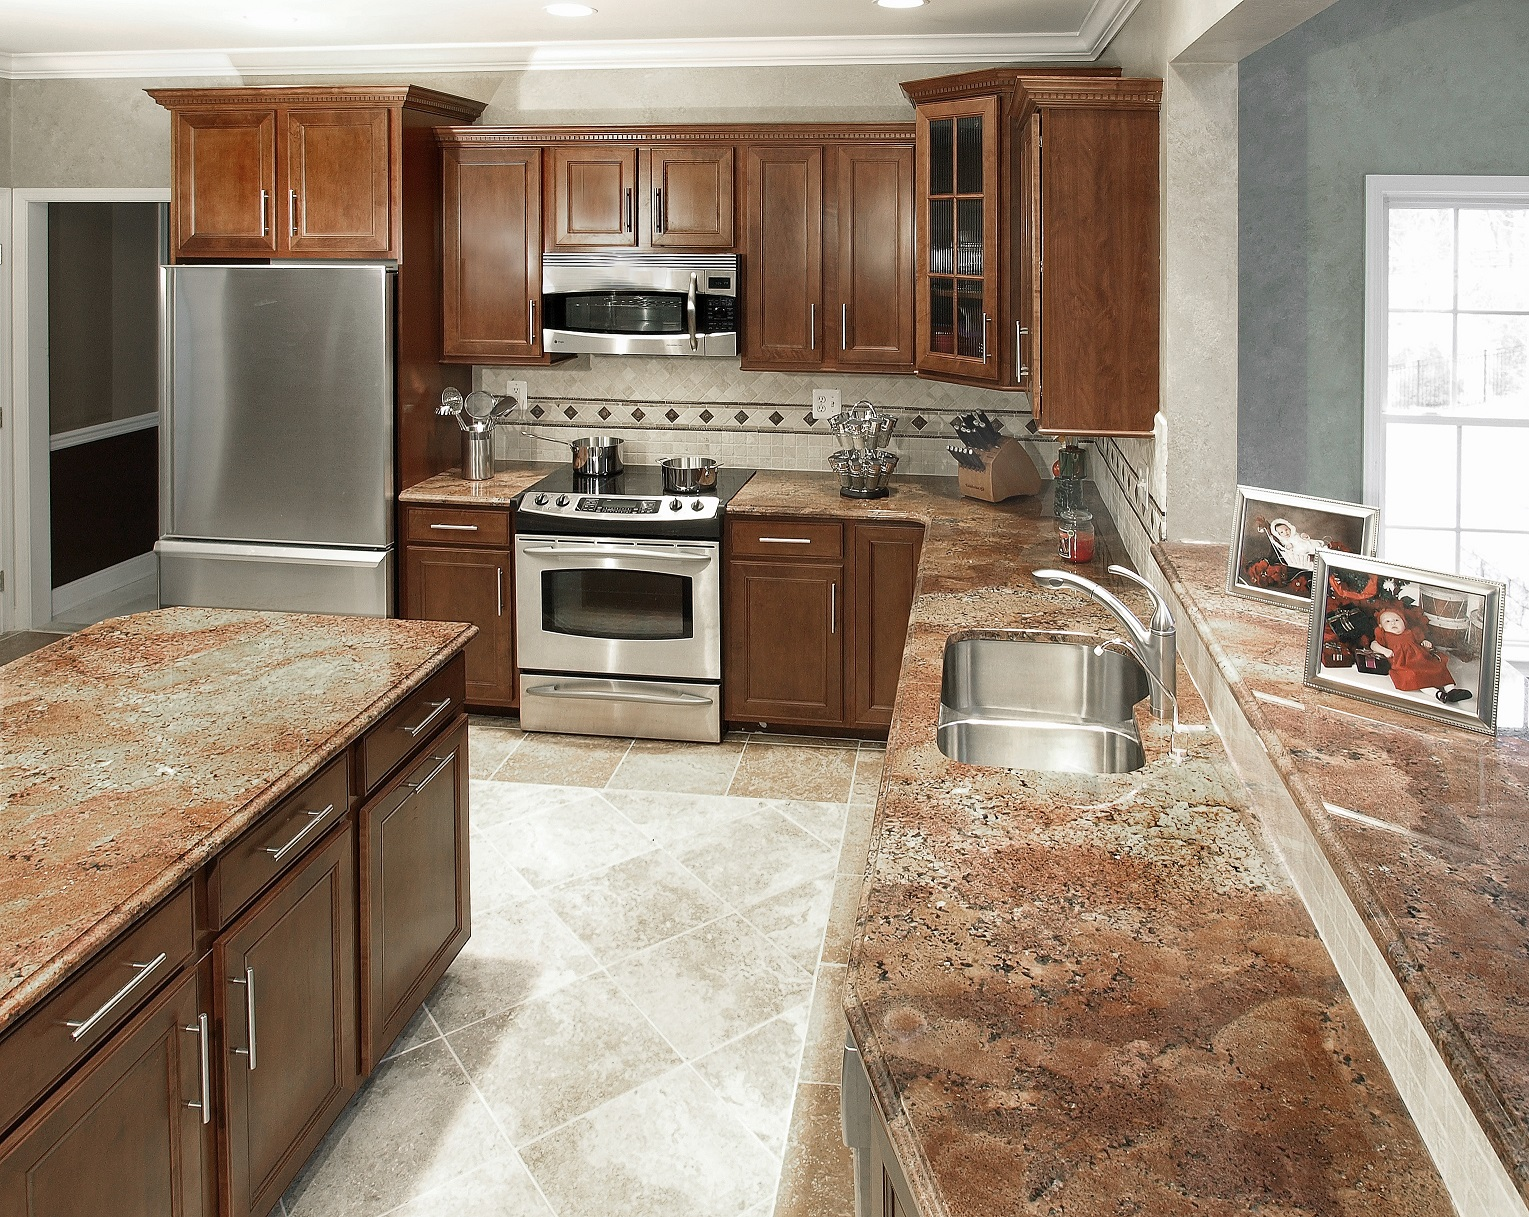 100% Percent Financing | Colonial Marble & Granite